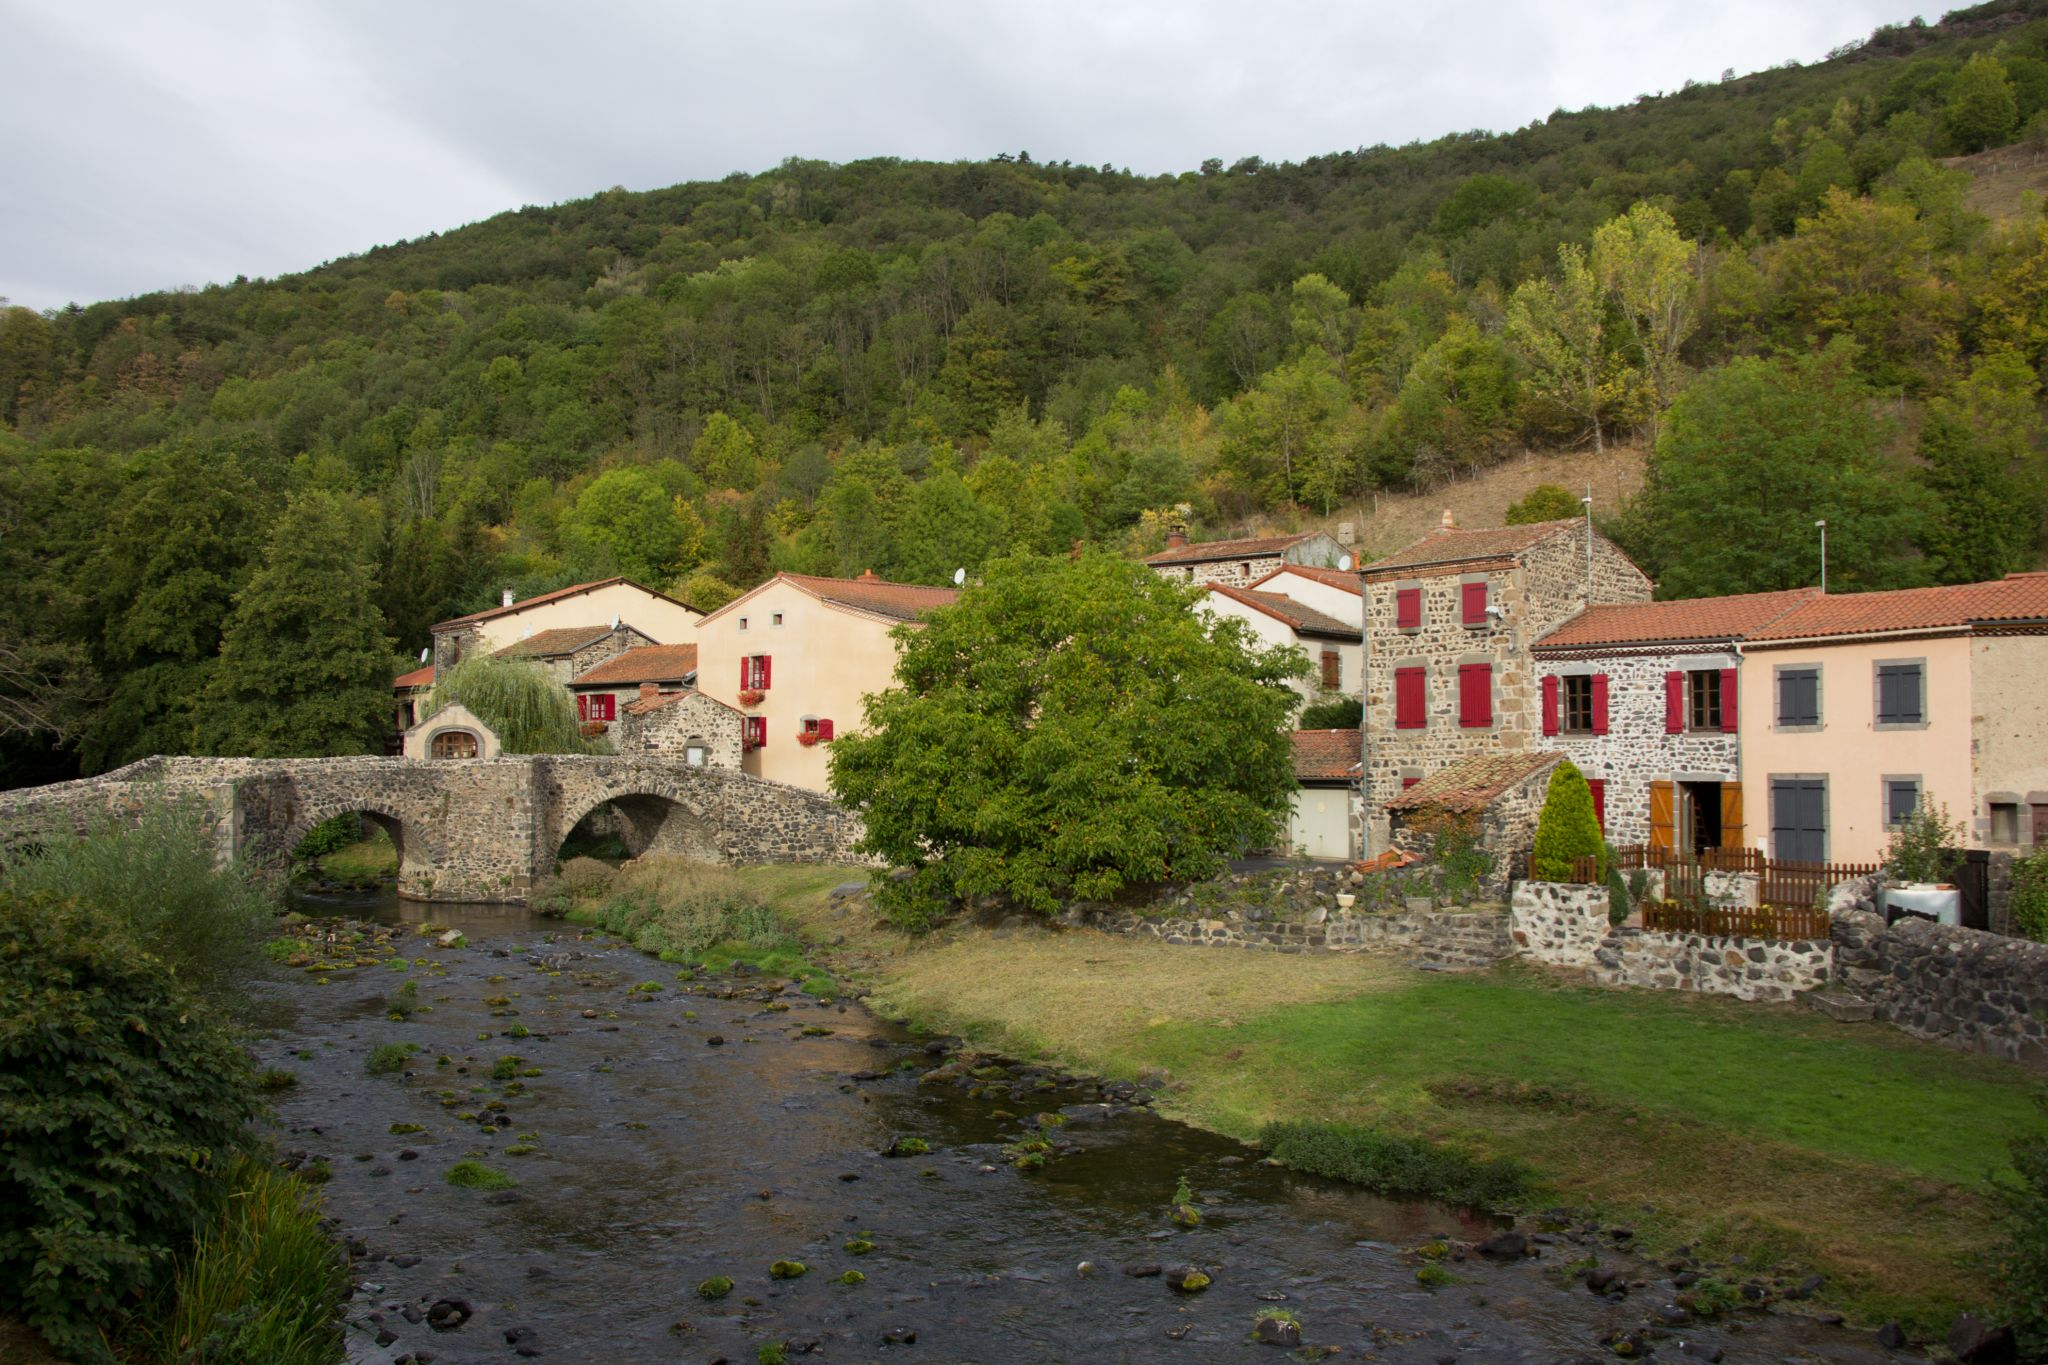 Saurier (old bridge), France